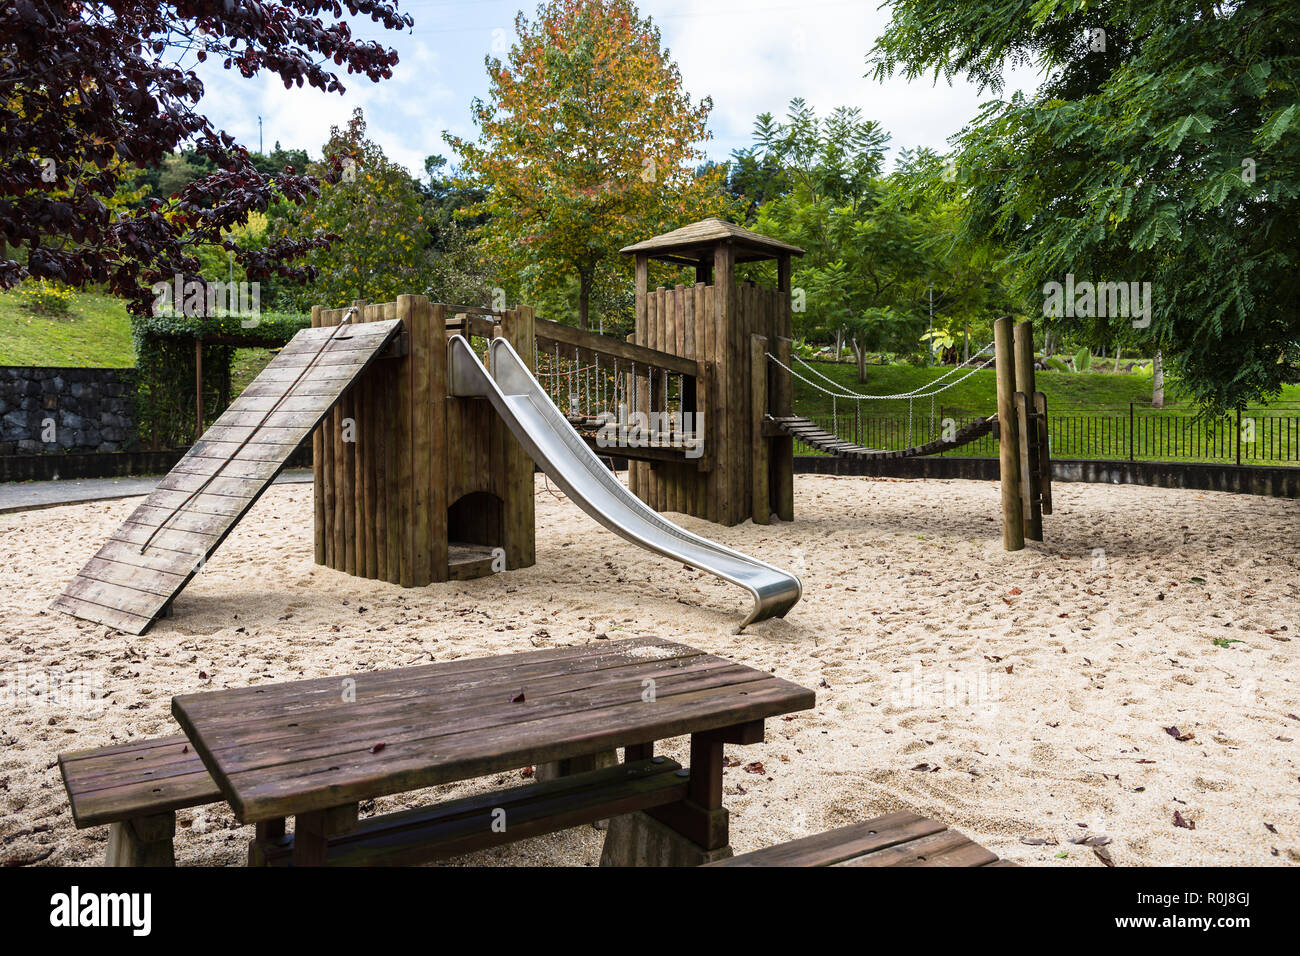 Public Wooden Castle Playground To The Kids Stock Photo 224136658